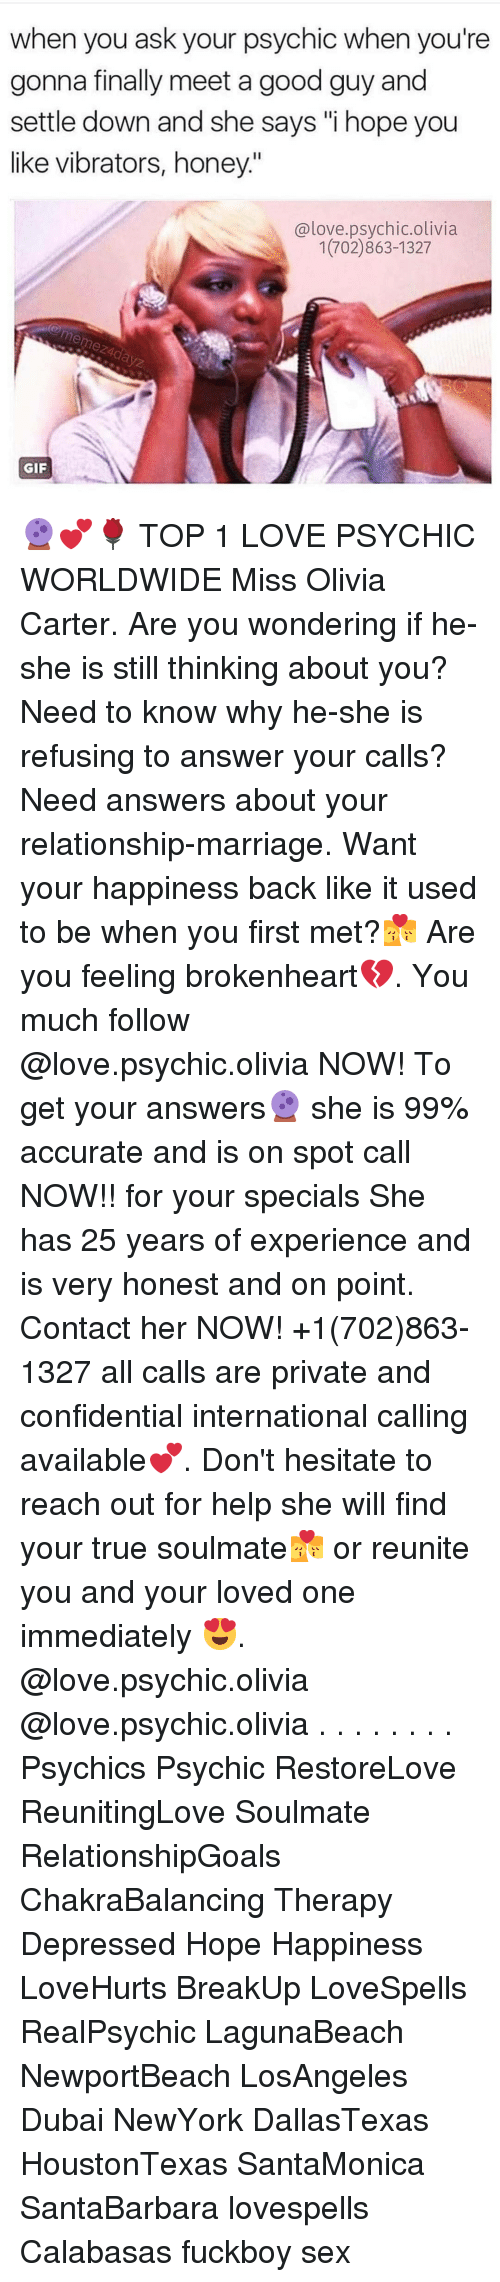 """brokenheart: when you ask your psychic when you're  gonna finally meet a good guy and  settle down and she says """"i hope you  like vibrators, honey.'""""  @love.psychic.olivia  1(702)863-1327  GIF 🔮💕🌹 TOP 1 LOVE PSYCHIC WORLDWIDE Miss Olivia Carter. Are you wondering if he-she is still thinking about you? Need to know why he-she is refusing to answer your calls? Need answers about your relationship-marriage. Want your happiness back like it used to be when you first met?💏 Are you feeling brokenheart💔. You much follow @love.psychic.olivia NOW! To get your answers🔮 she is 99% accurate and is on spot call NOW!! for your specials She has 25 years of experience and is very honest and on point. Contact her NOW! +1(702)863-1327 all calls are private and confidential international calling available💕. Don't hesitate to reach out for help she will find your true soulmate💏 or reunite you and your loved one immediately 😍. @love.psychic.olivia @love.psychic.olivia . . . . . . . . Psychics Psychic RestoreLove ReunitingLove Soulmate RelationshipGoals ChakraBalancing Therapy Depressed Hope Happiness LoveHurts BreakUp LoveSpells RealPsychic LagunaBeach NewportBeach LosAngeles Dubai NewYork DallasTexas HoustonTexas SantaMonica SantaBarbara lovespells Calabasas fuckboy sex"""